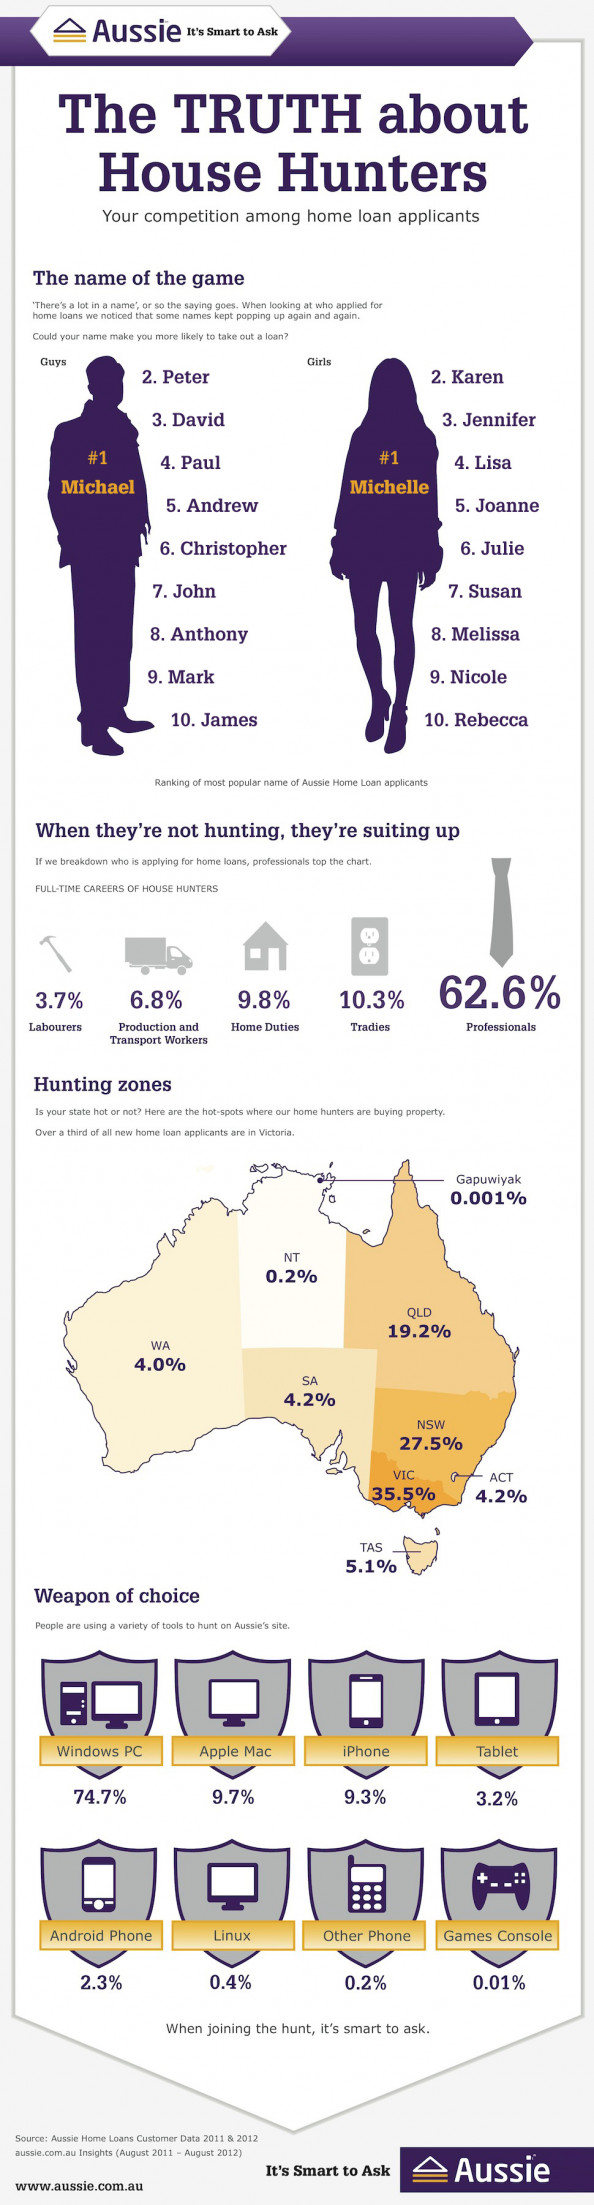 The Truth about House Hunters Infographic